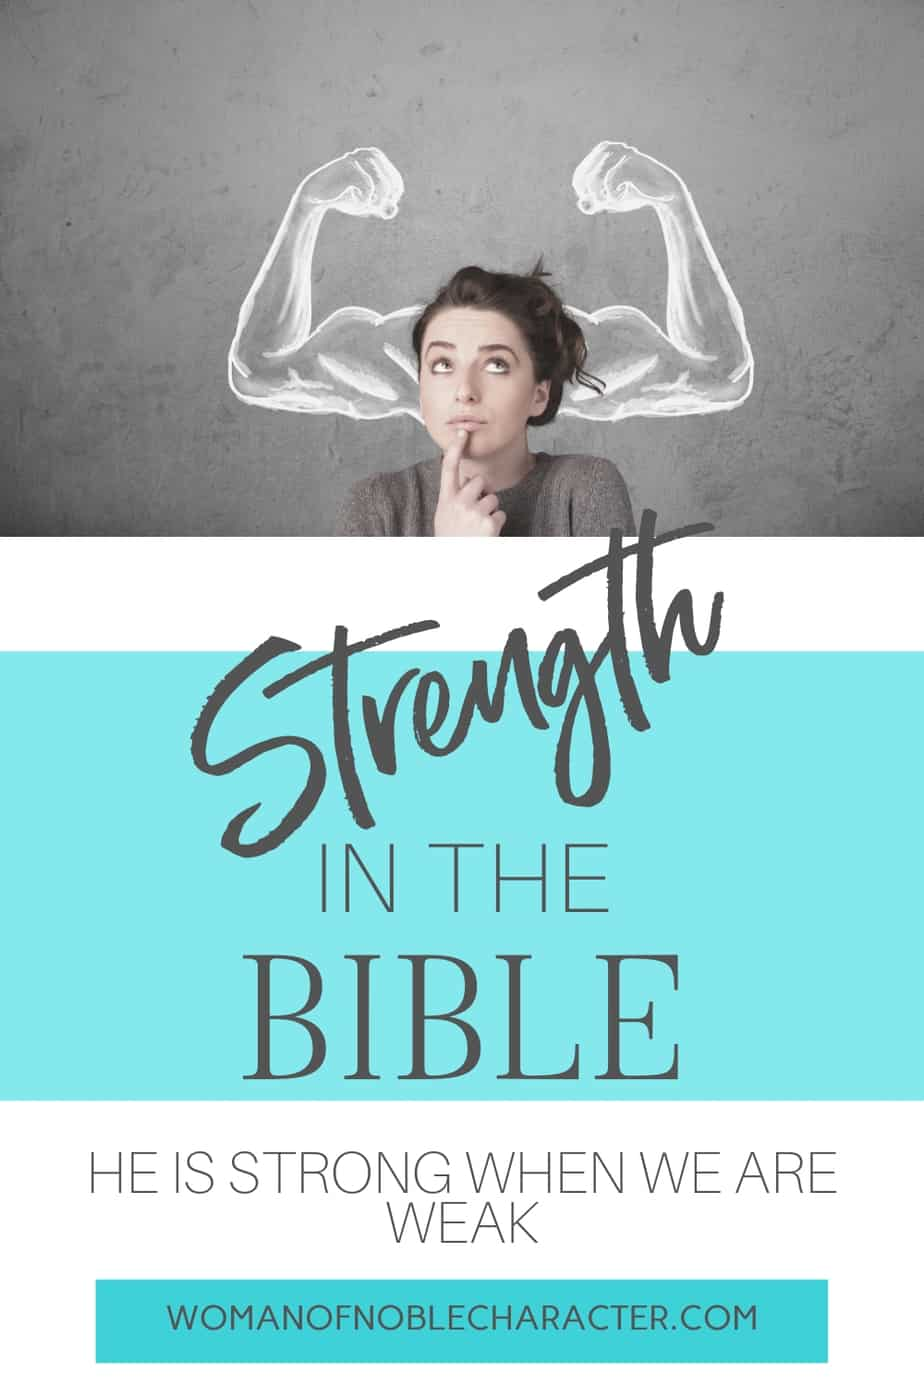 A woman thinking against a chalkboard background with muscles flexed drawn on it - Strength in the Bible